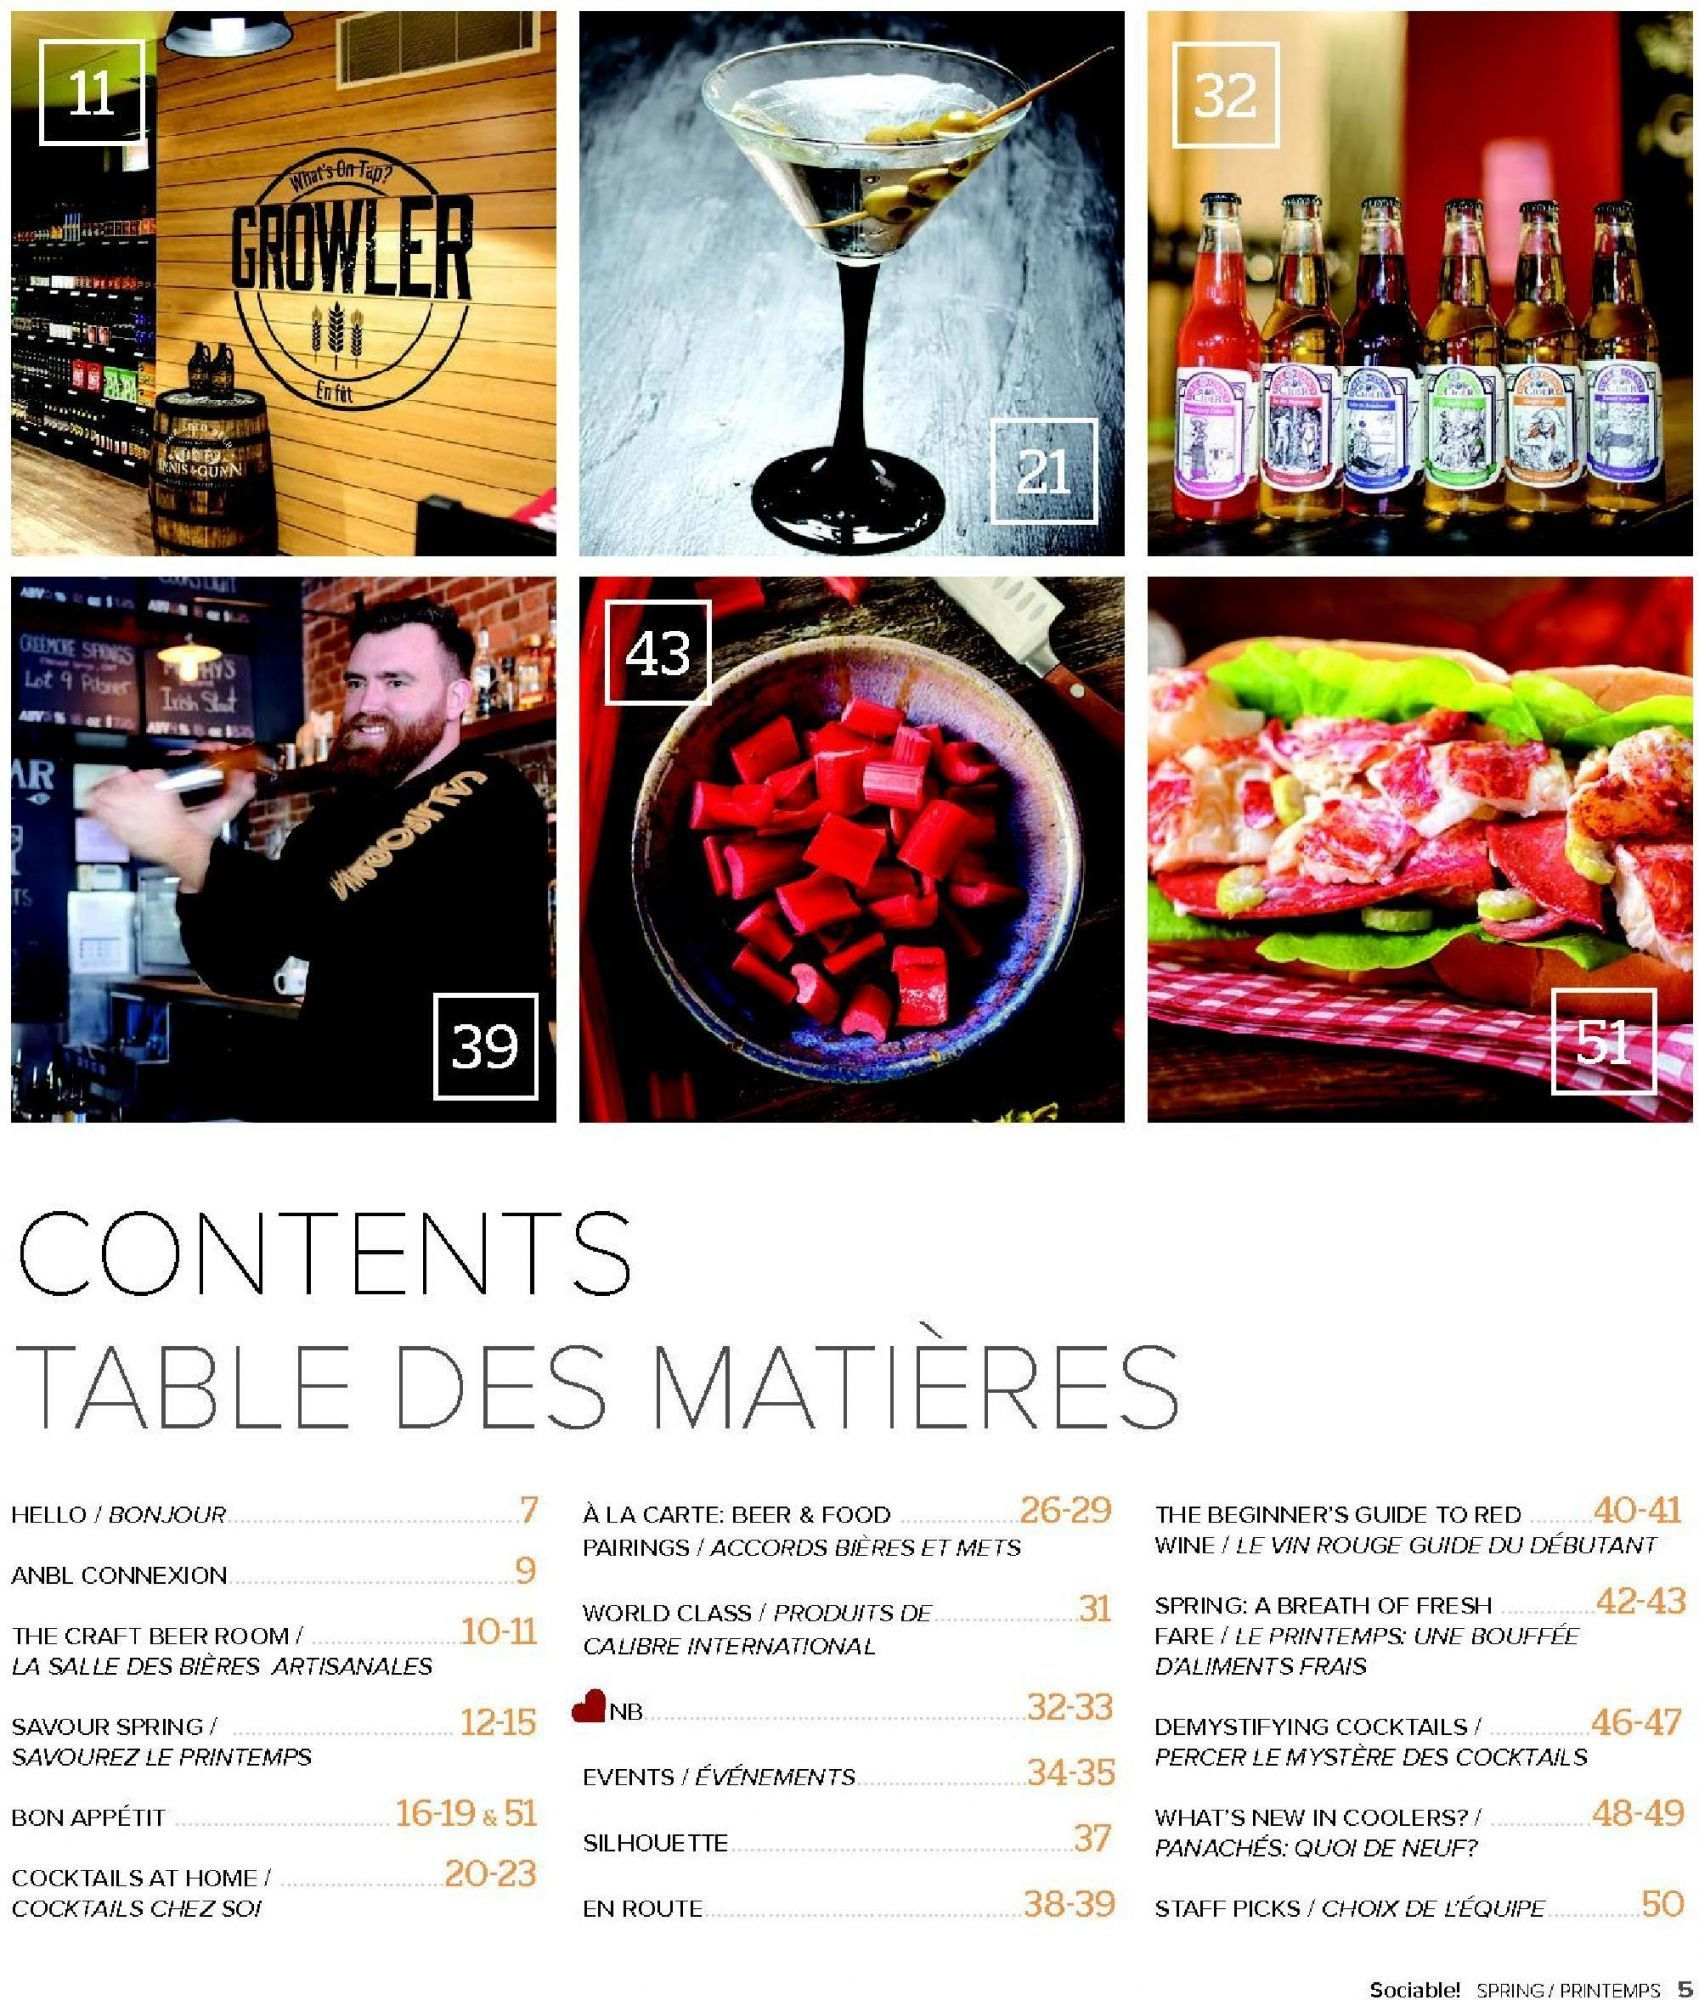 Flyer Alcool Nb Liquor Sociable Spring 2018 Magazine Canada From Tuesday May 1 2018 To Saturday June 30 2018 Flyer Beer Room Beer Recipes